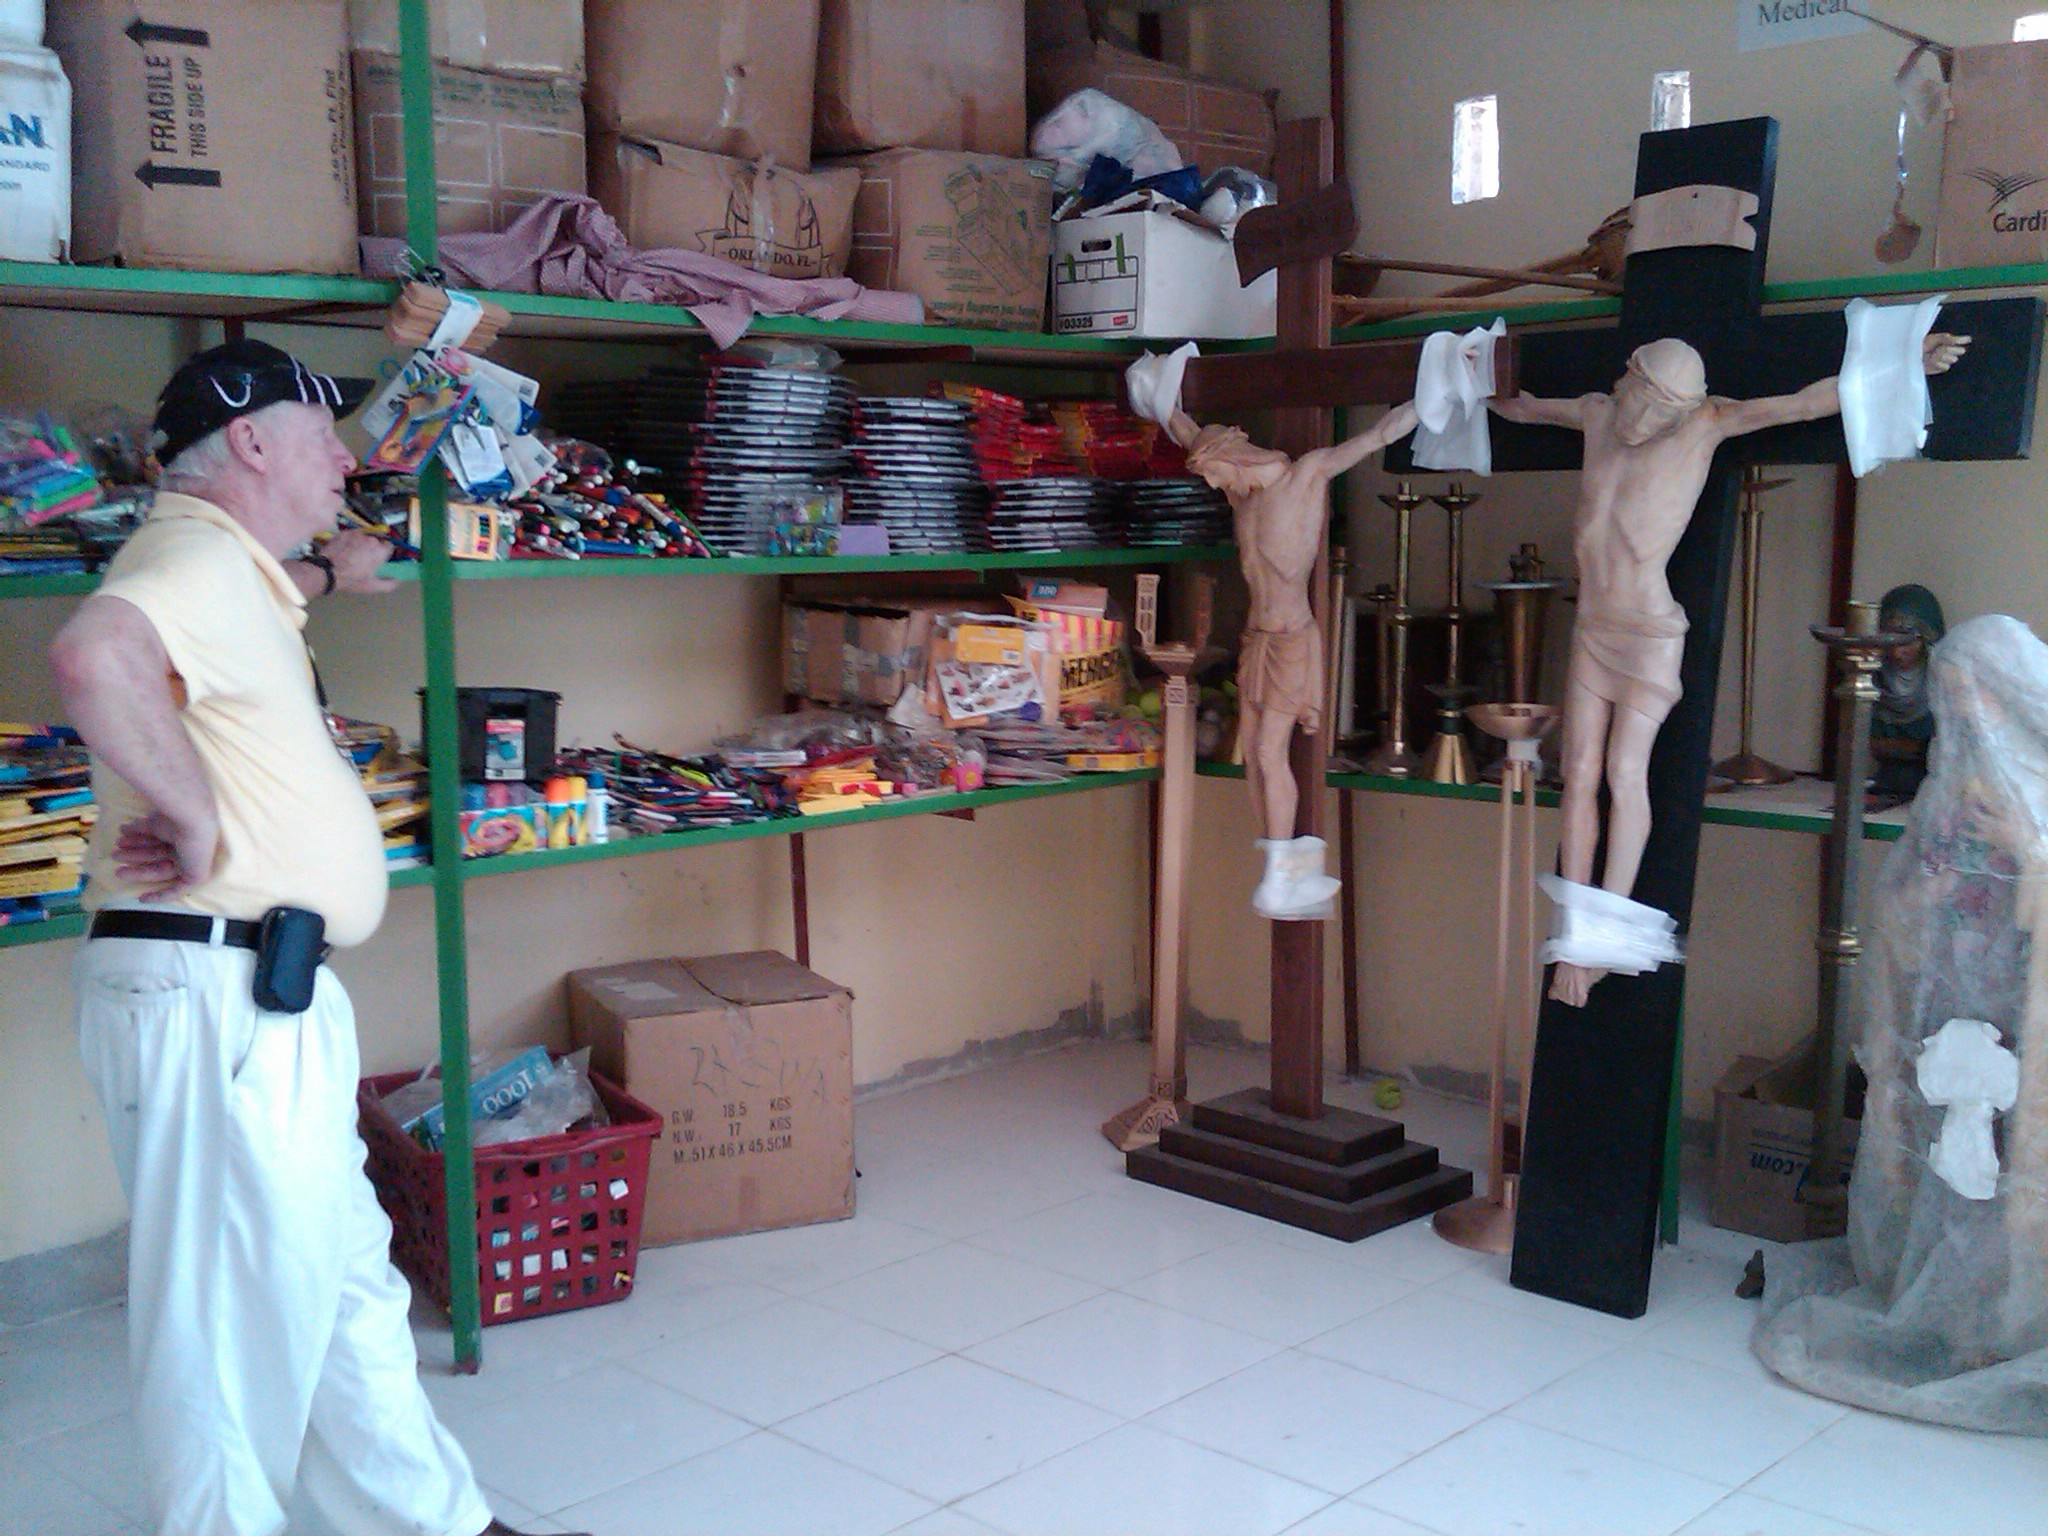 Fr. Tom in looks at donated crosses in our depot